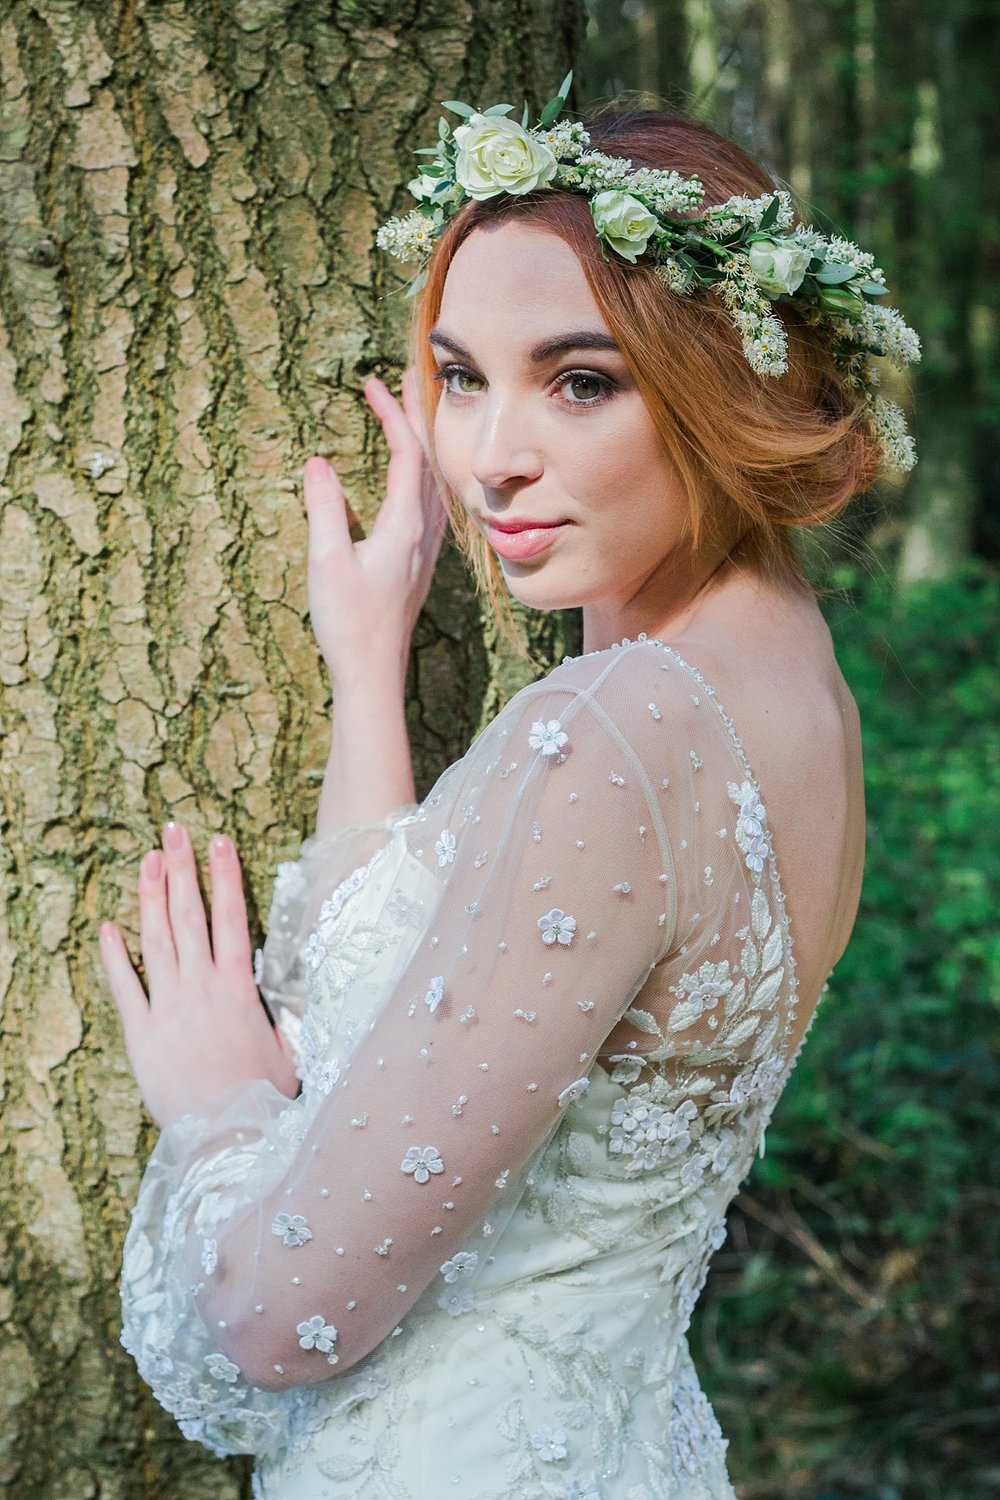 Vintage Amy Wedding Styling-Vintage Whimsical Woodland Wedding Kent-Vintage Bride Jenny Packham Dress